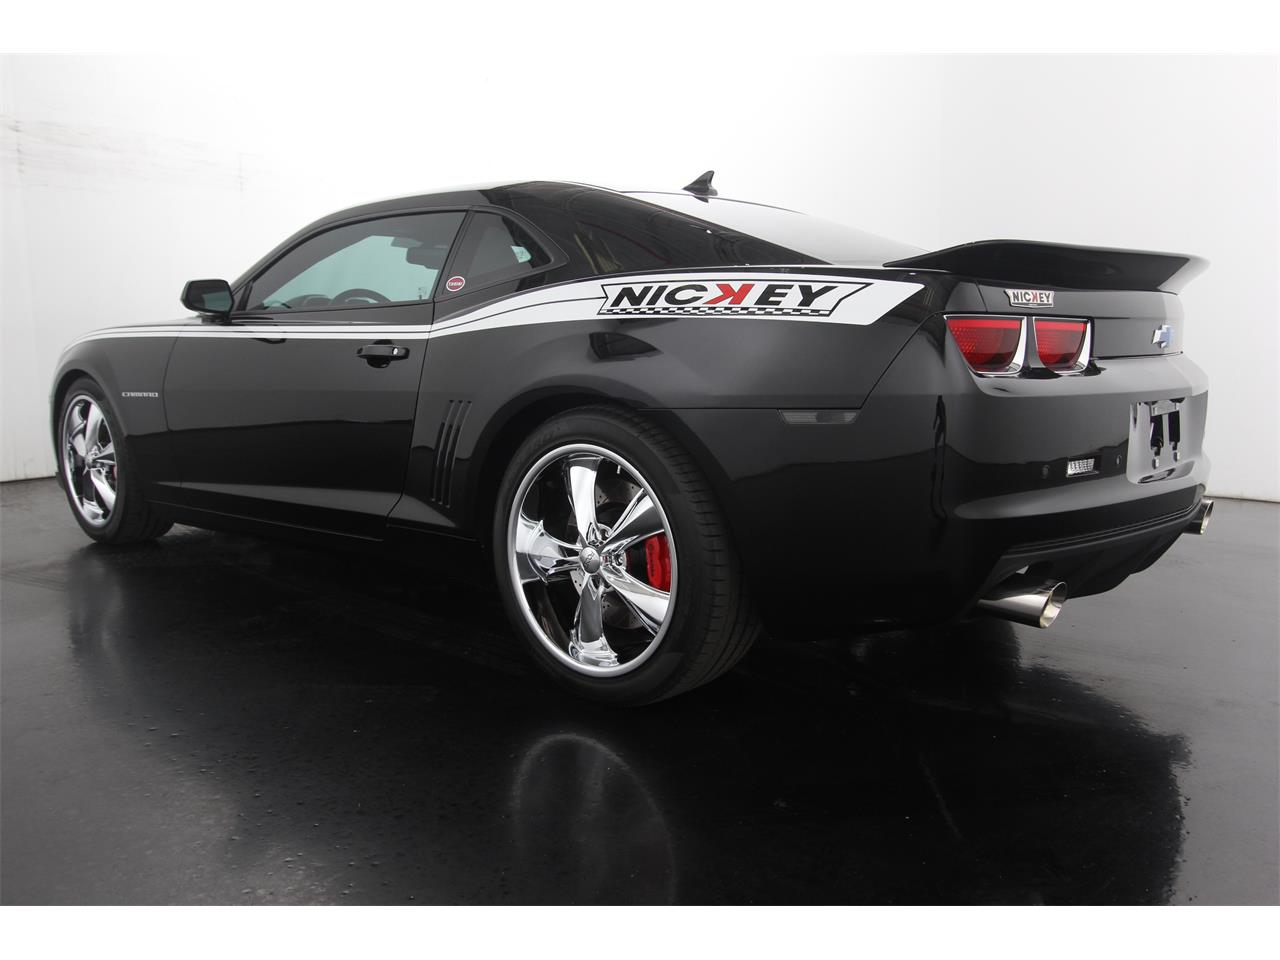 Large Picture of 2012 Chevrolet Camaro - $52,500.00 - JHYN